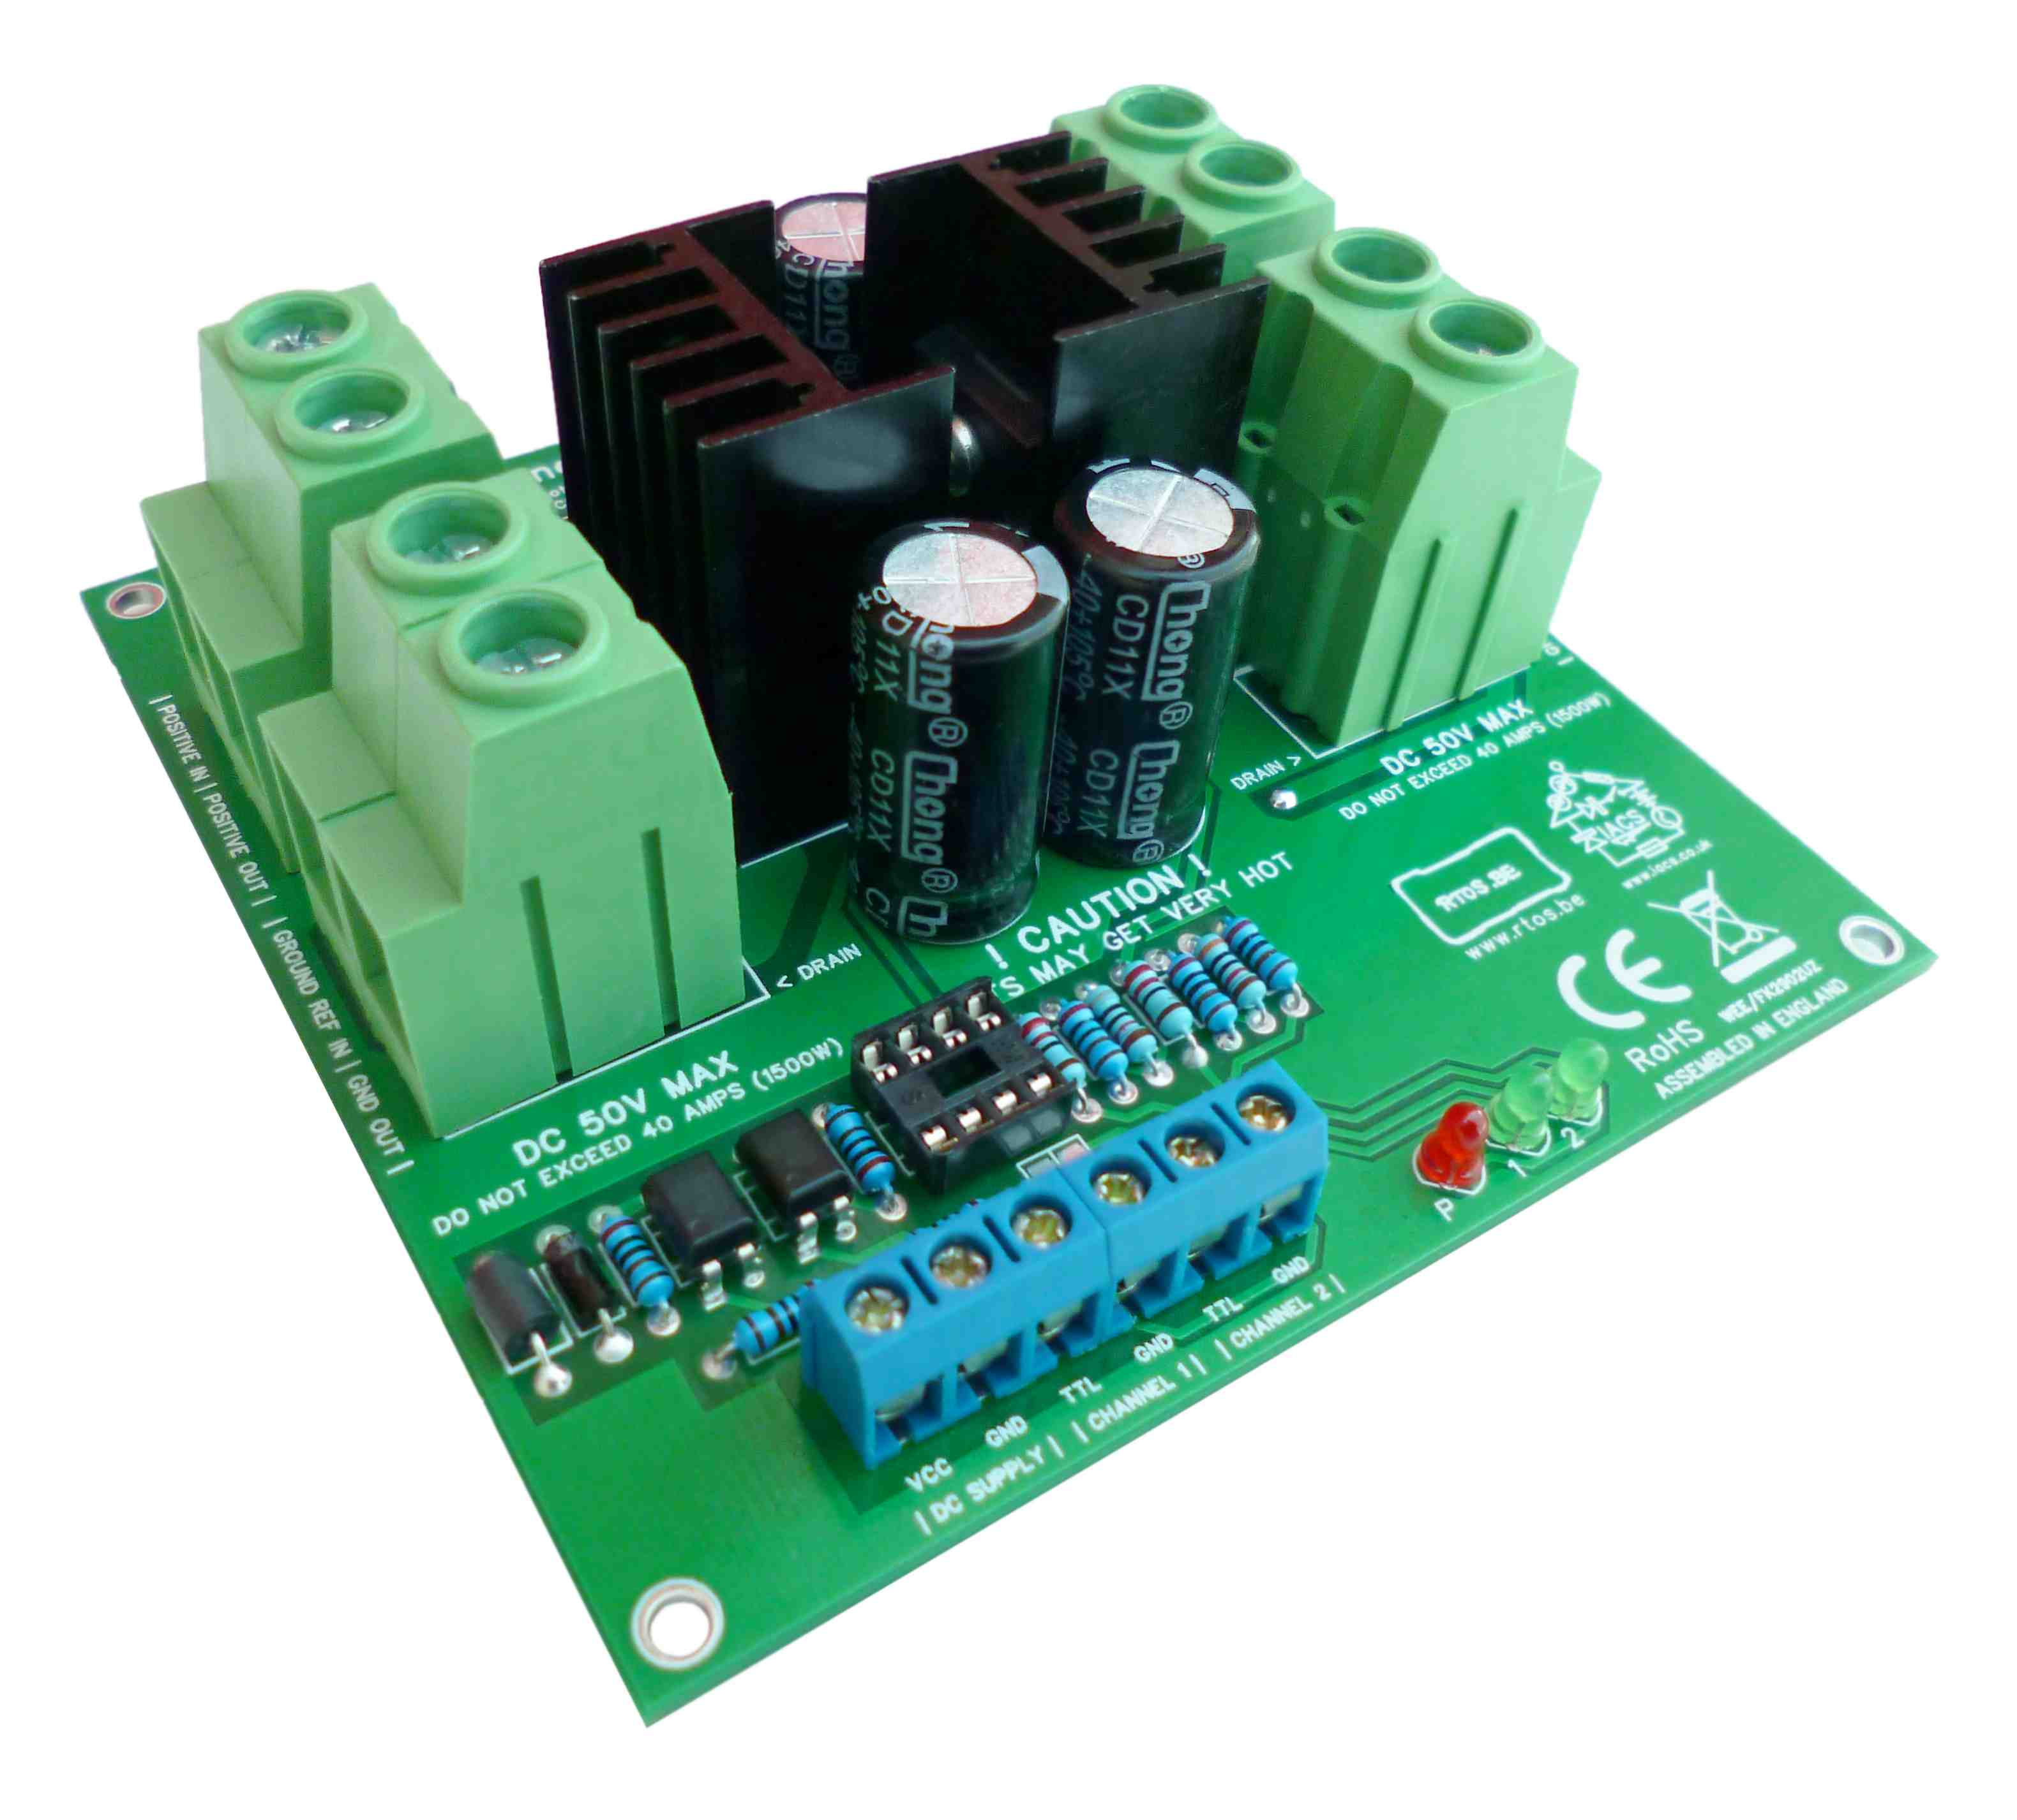 Charging A Deep Cycle Battery Via Low Side Mosfet Switching The 2 Way Switch Our Sensor Board That Enables Us To Read Volts And Amps